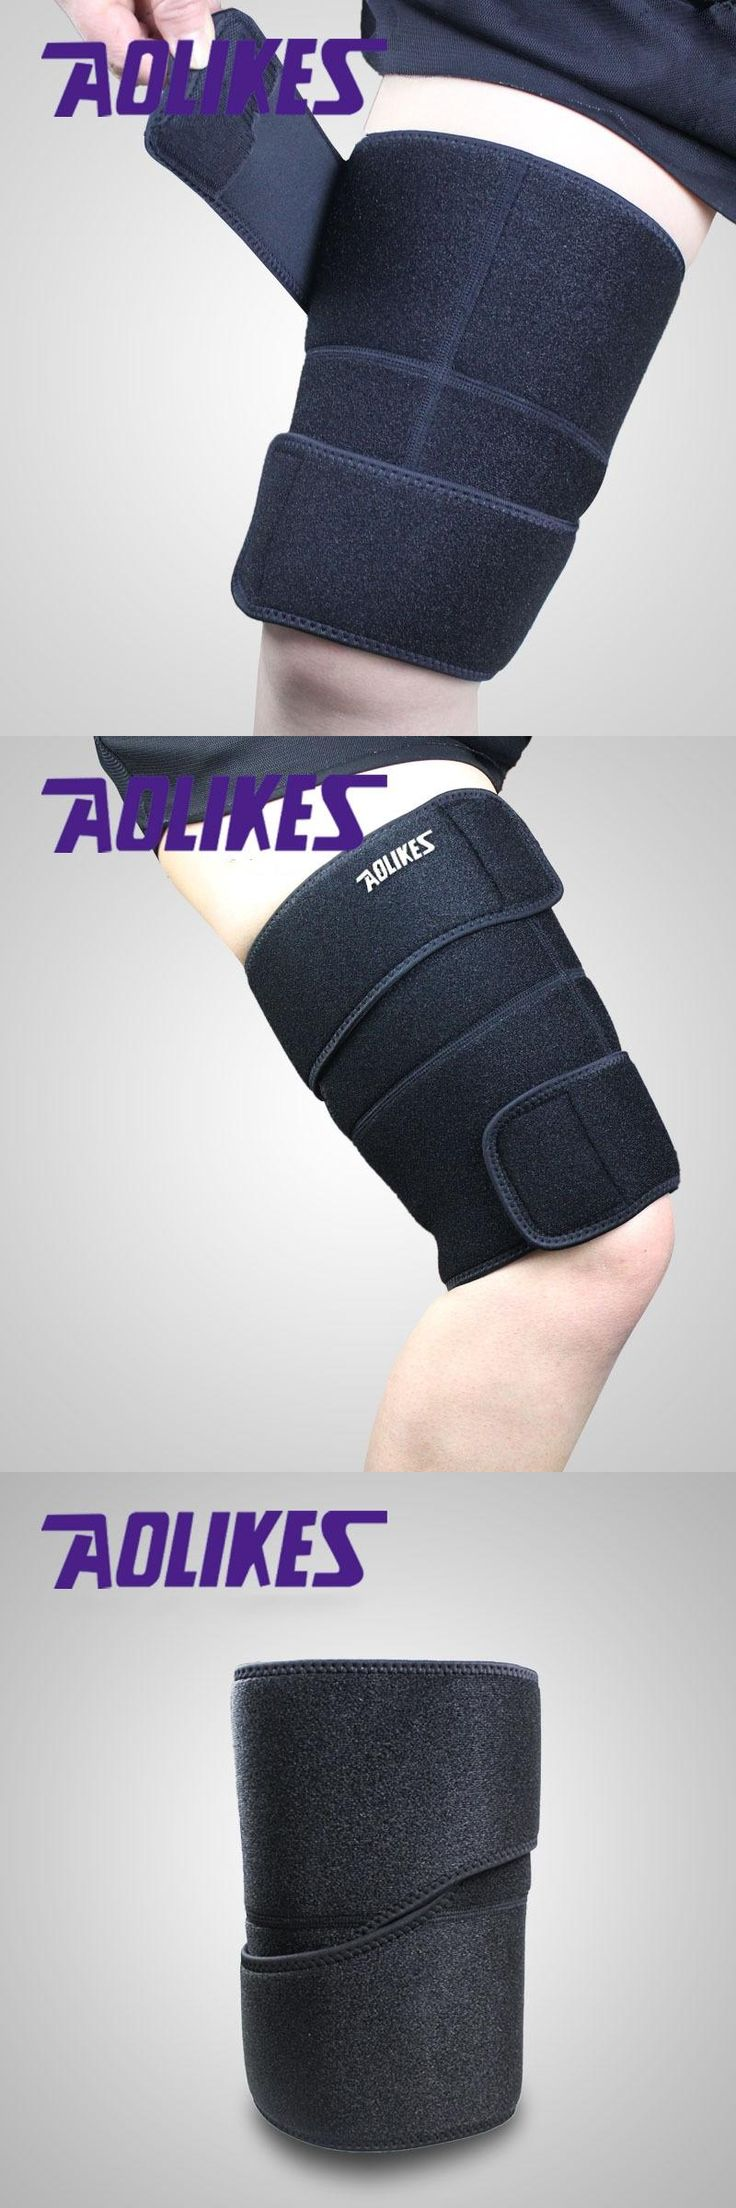 [Visit to Buy] 1 piece AOLIKES sport thigh guard muscle strain protector muslo pads support fitness Leggings leg compression Sports Safety #Advertisement